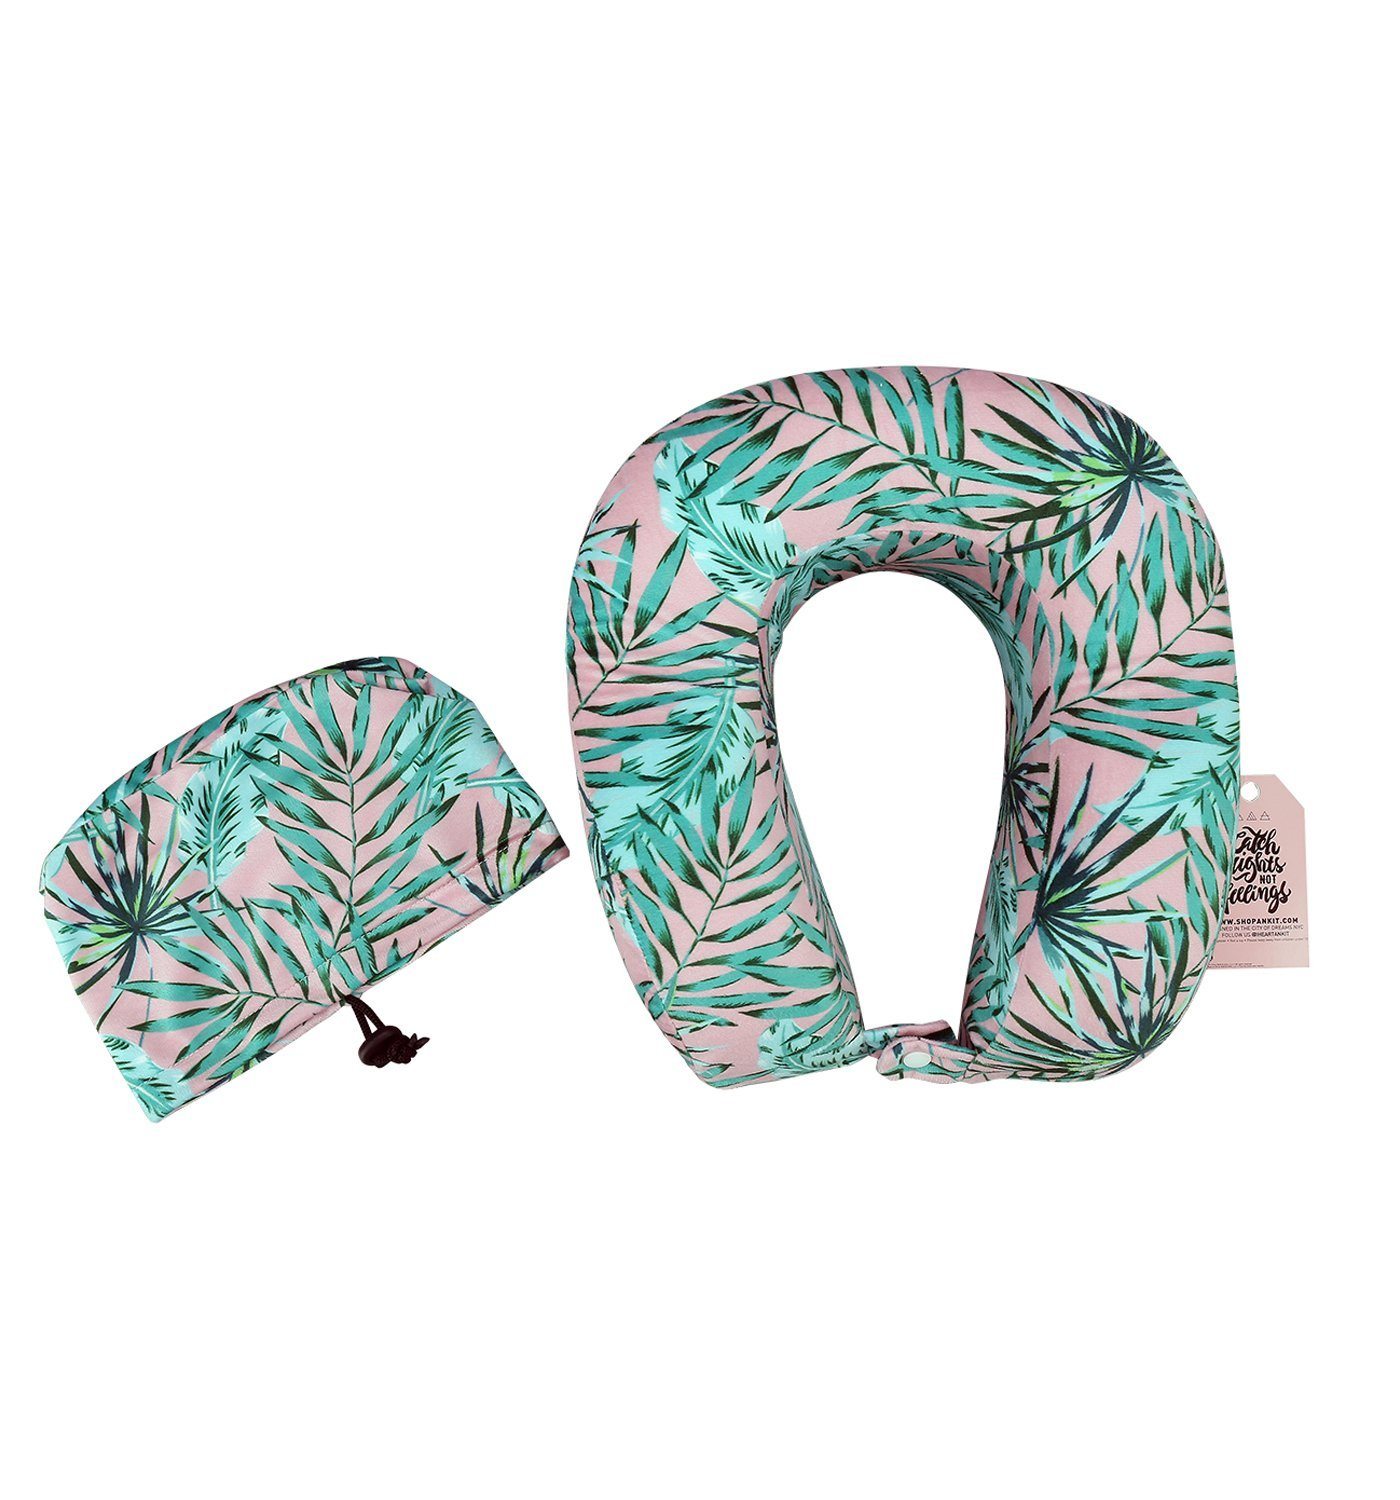 ANKIT Travel Pillow for Airplanes - Soft Ergonomic Travel Cushion for Neck Support Easy to Carry Cool Travel Accessory